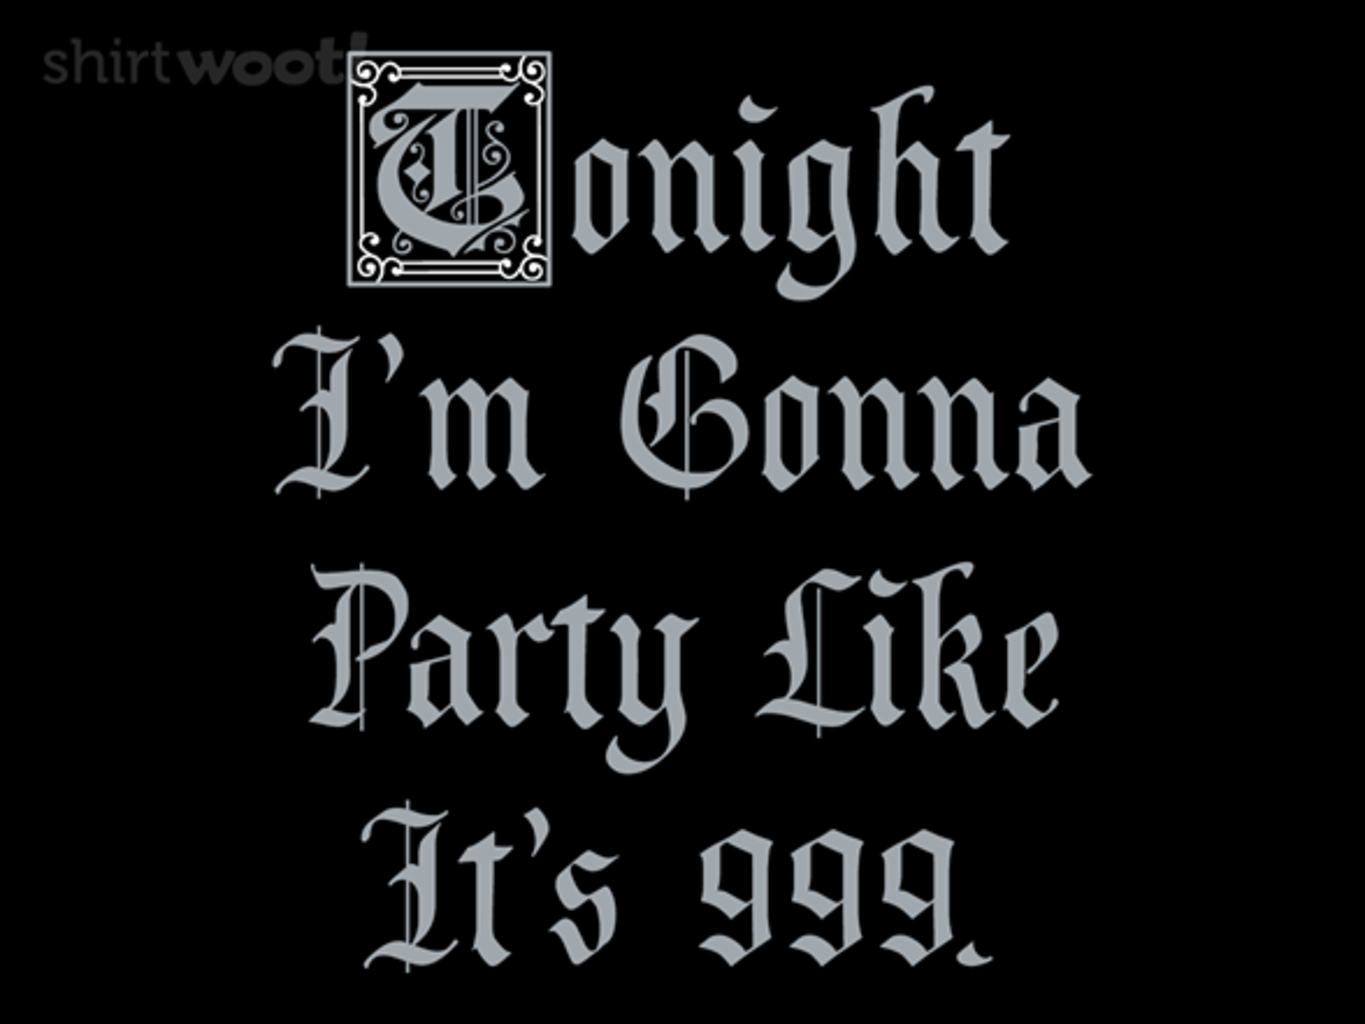 Woot!: Medieval Party